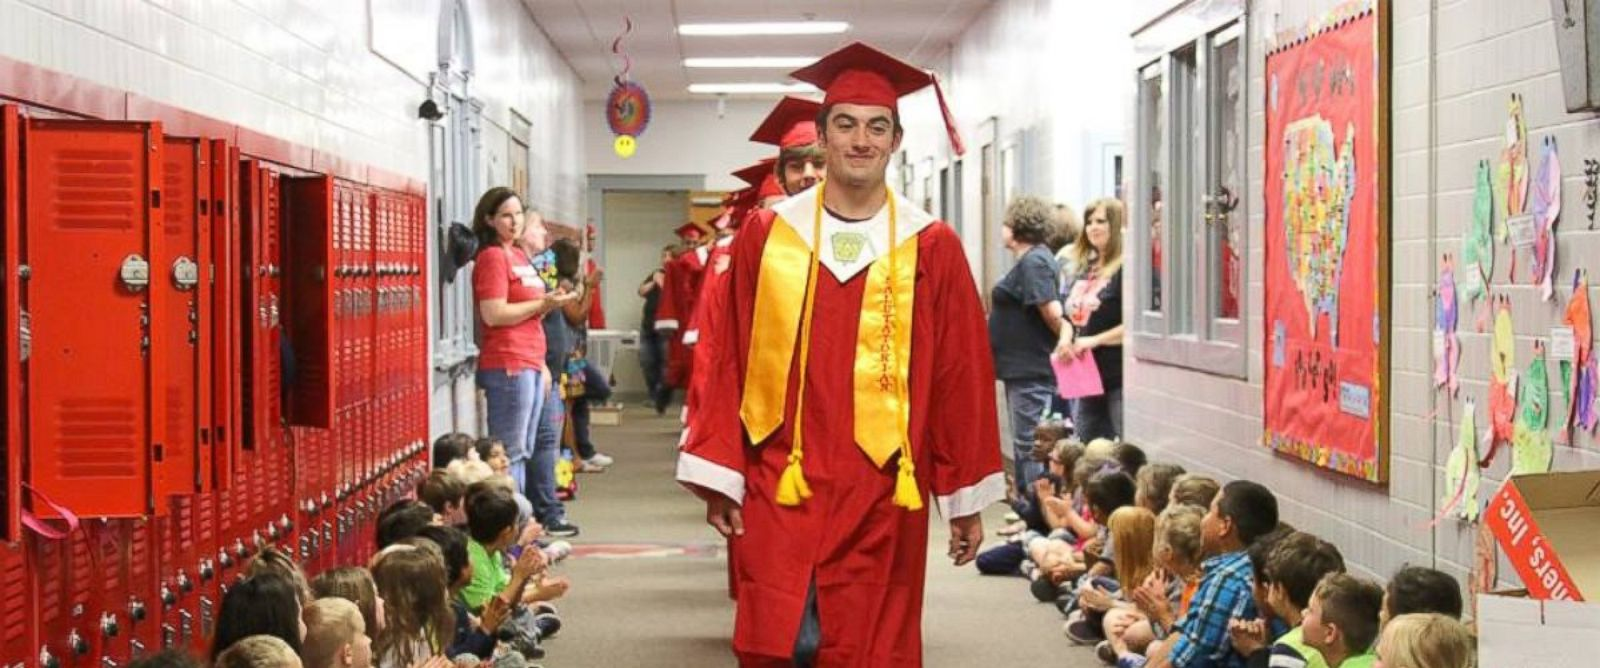 texas high school seniors take senior walk to inspire younger photo seniors at van high school in texas proudly walked the halls on the schools